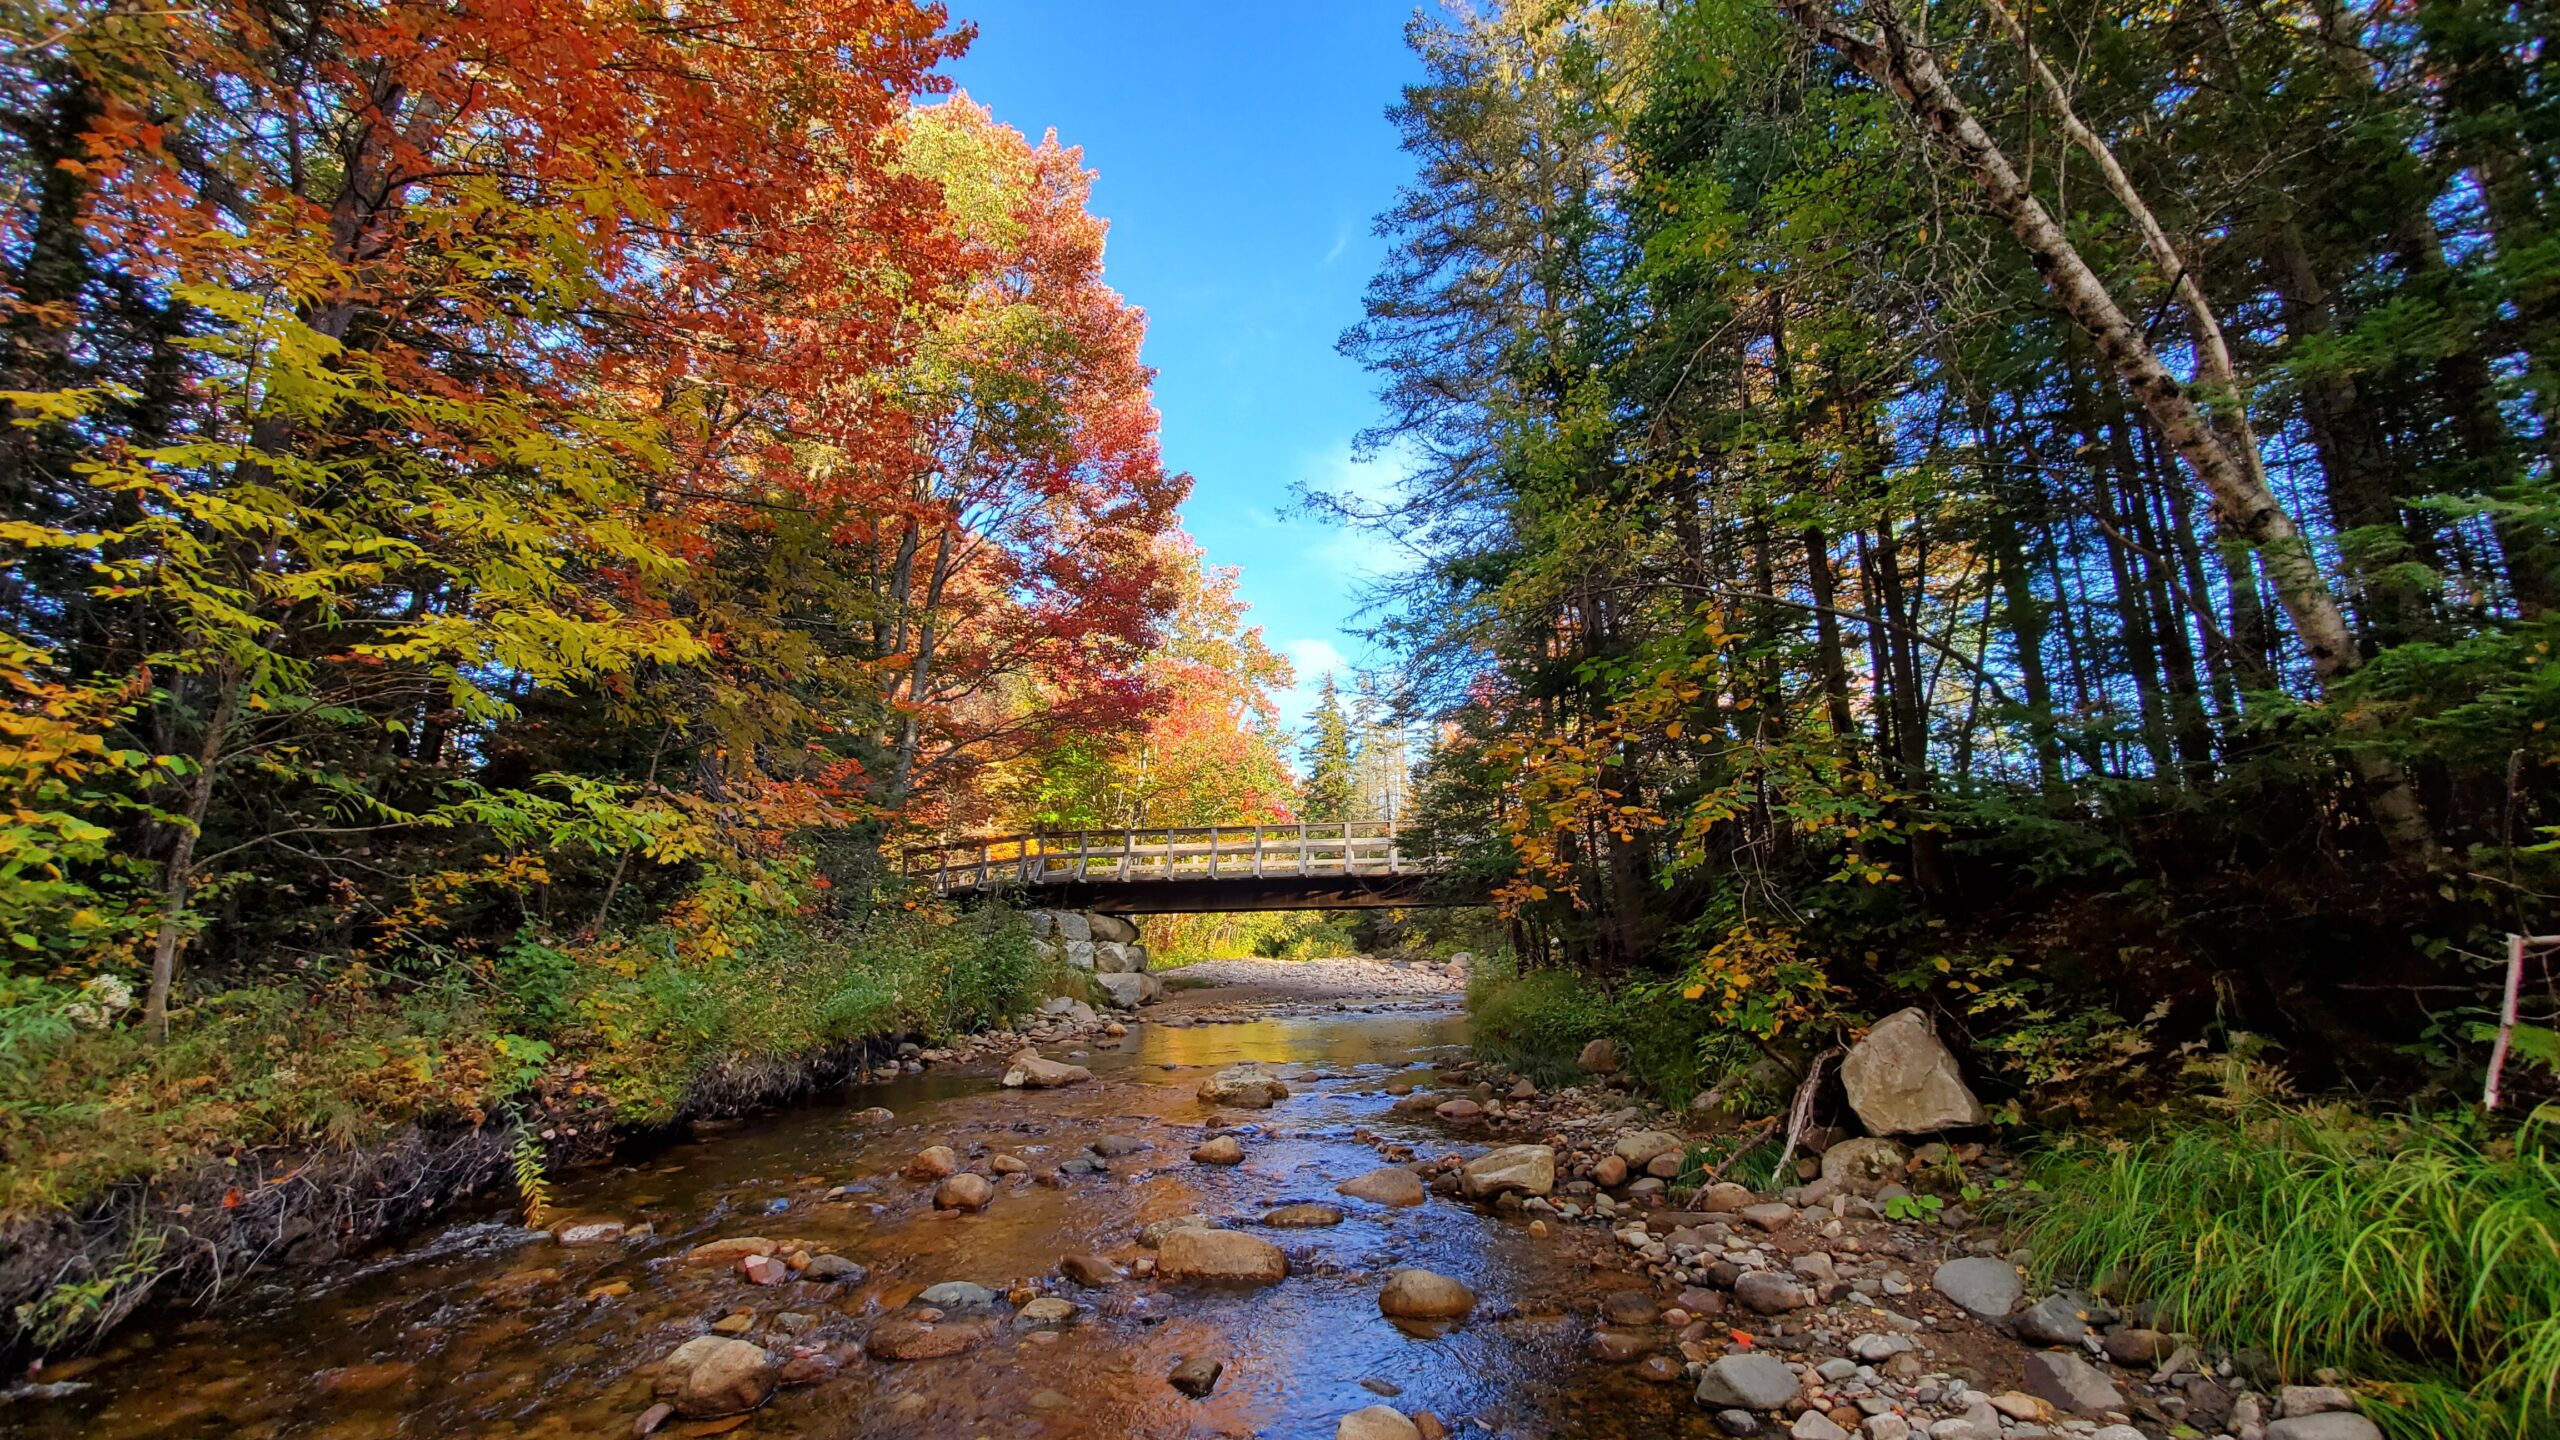 A wooden bridge in the Androscoggin Valley surrounded by fall foliage